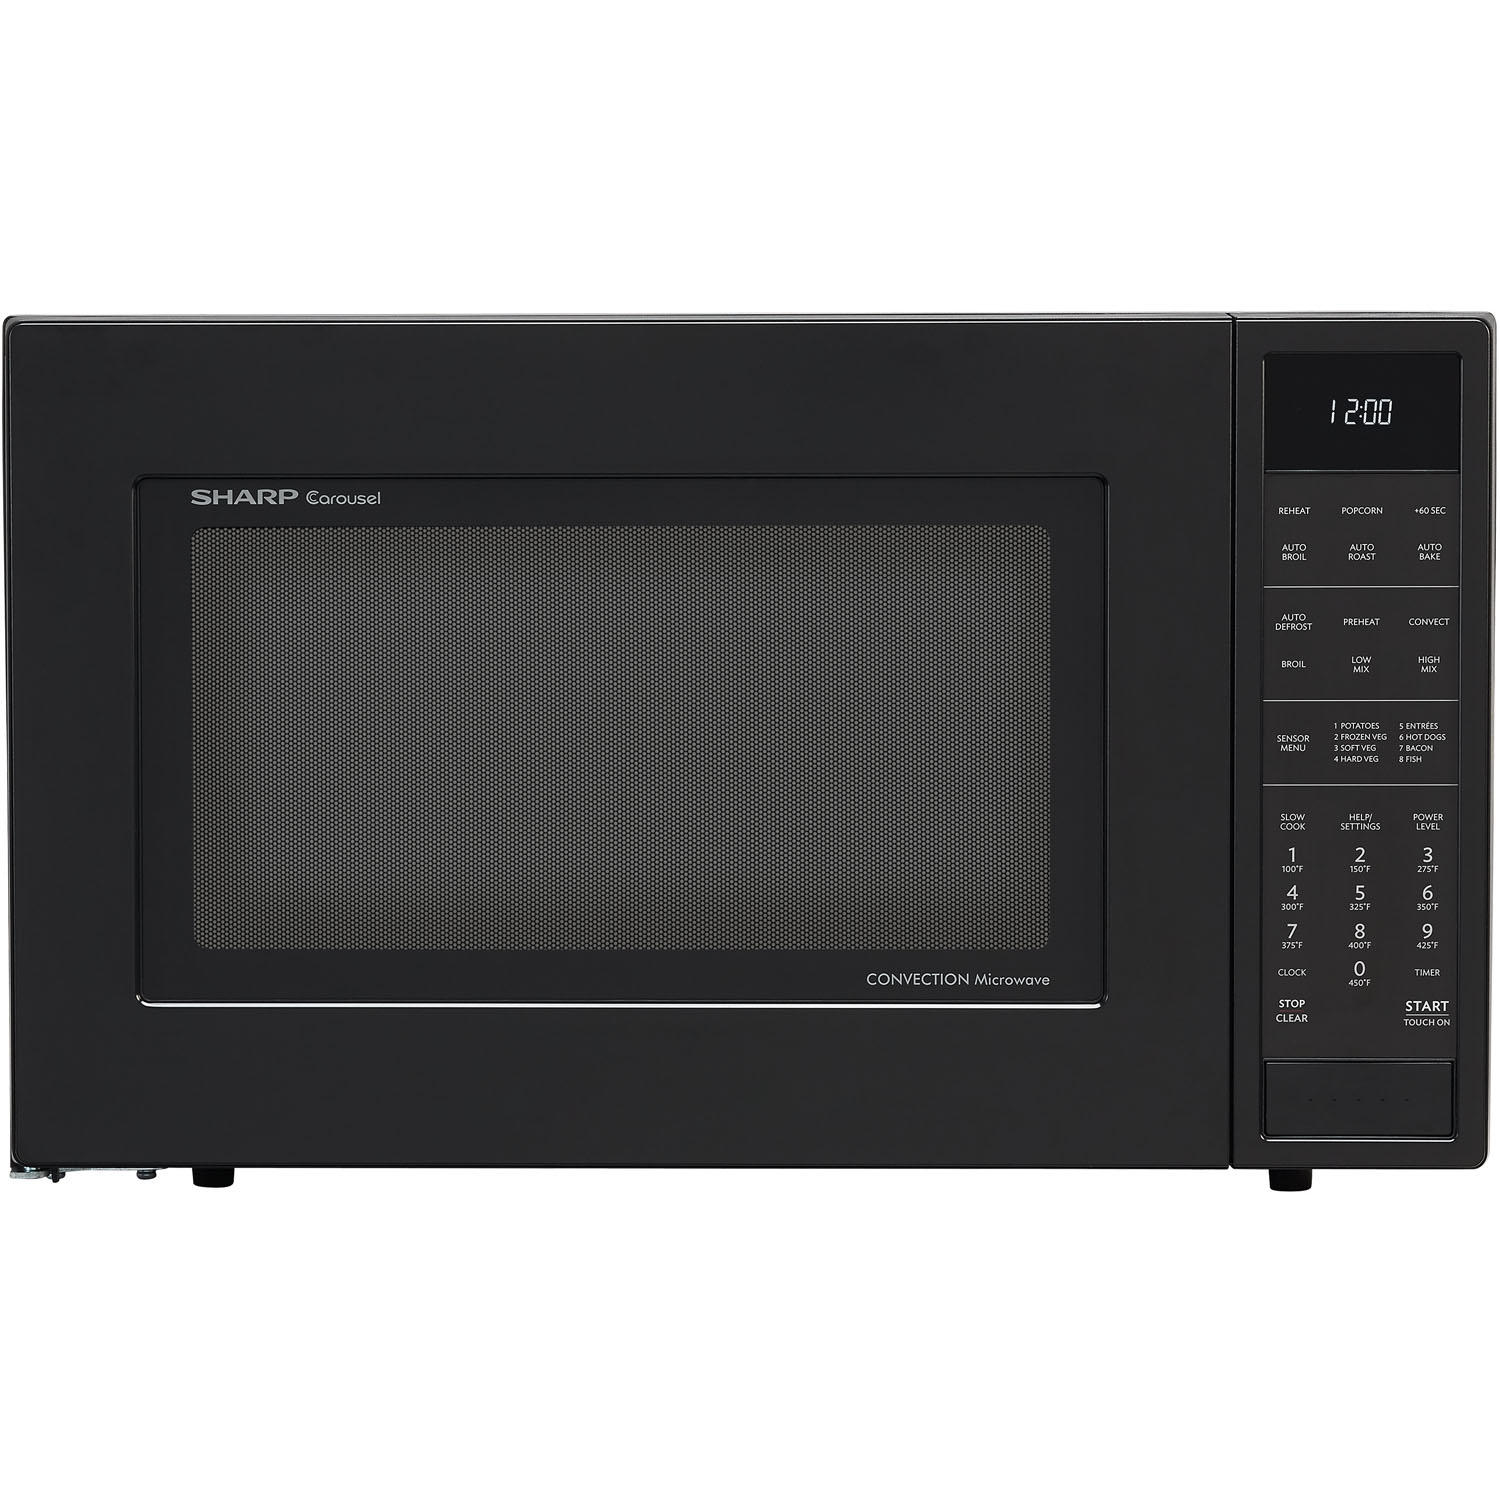 sharp smc1585bb 1 5 cu ft microwave oven with with convection cooking baking and browning in black